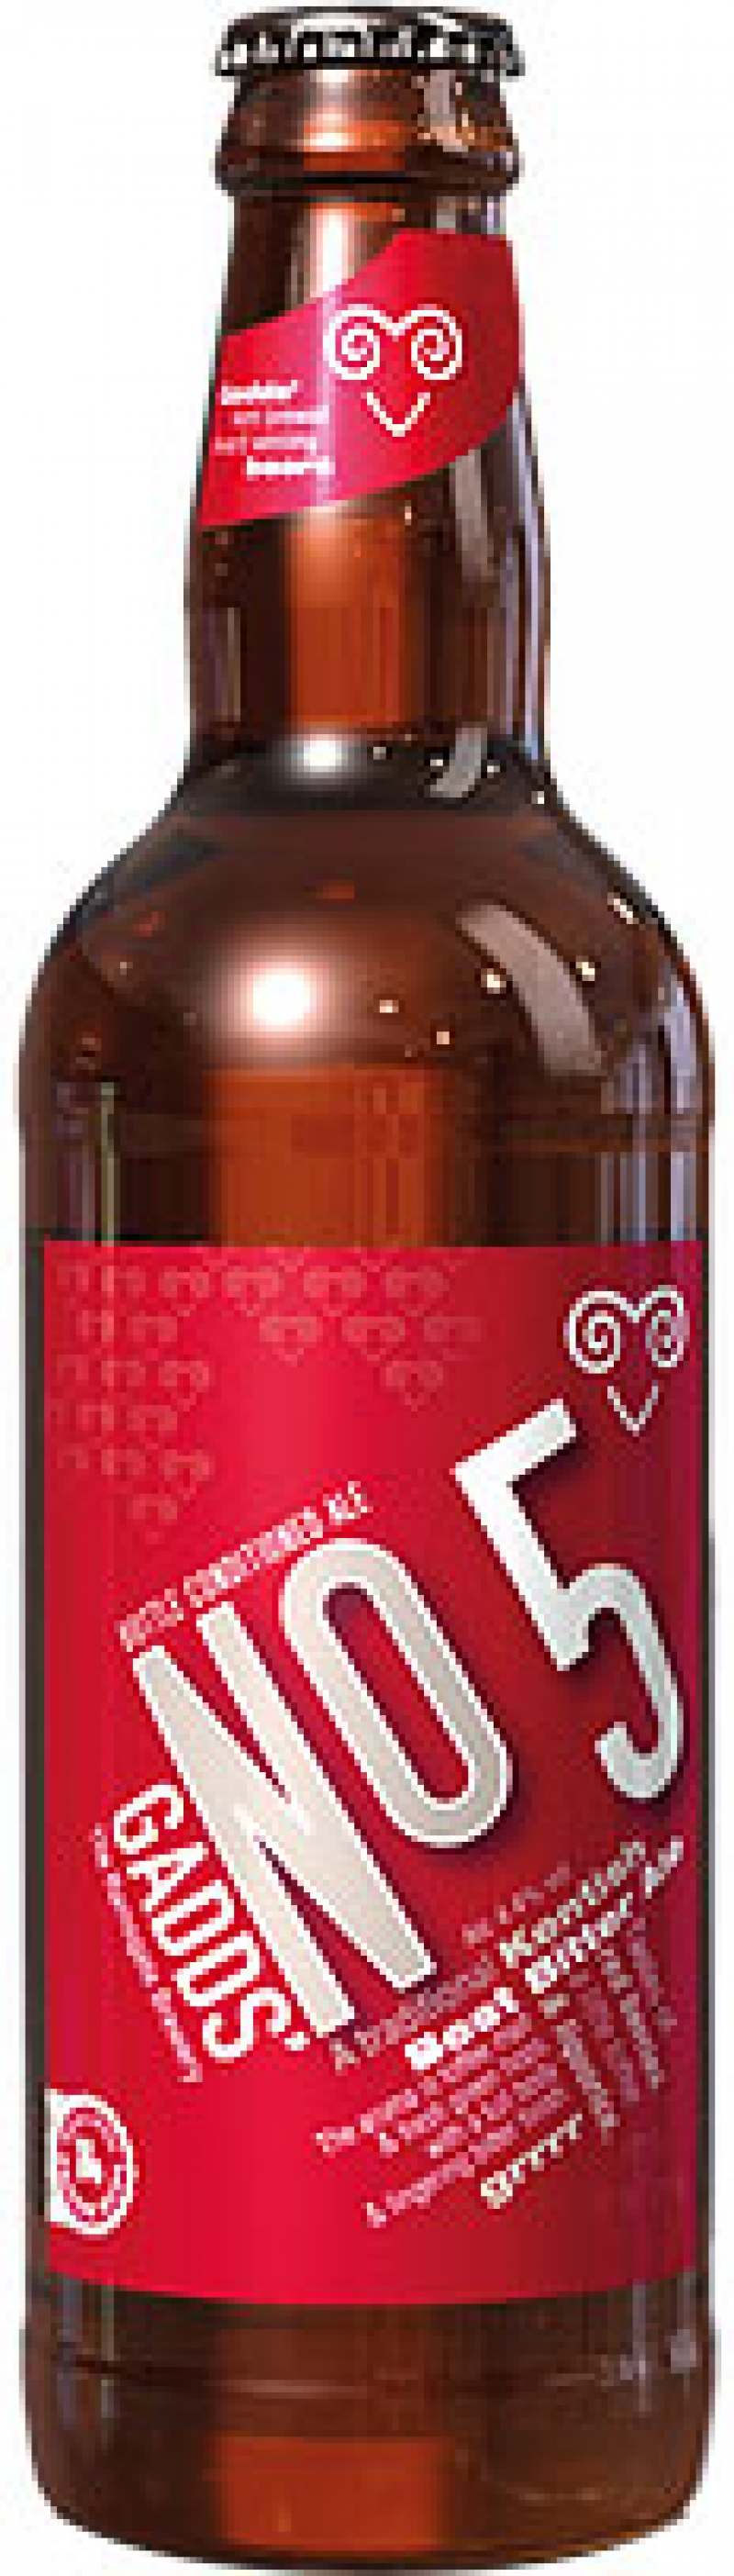 Gadds - No 5 Best Bitter Ale (12x 500ml Bottles)